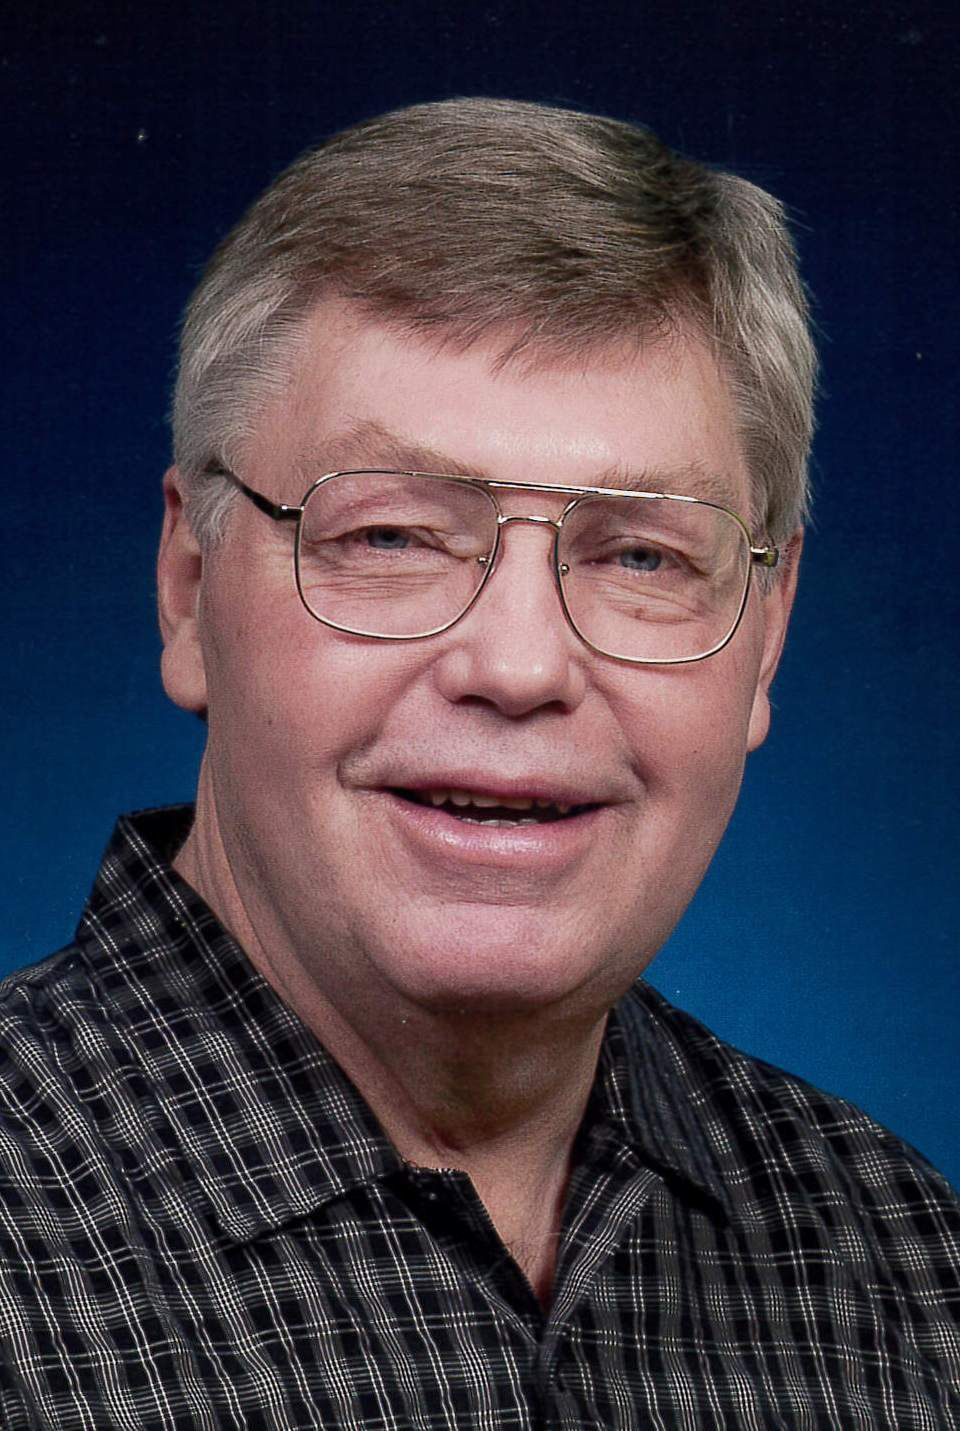 James A. Watters, 69, Friesland